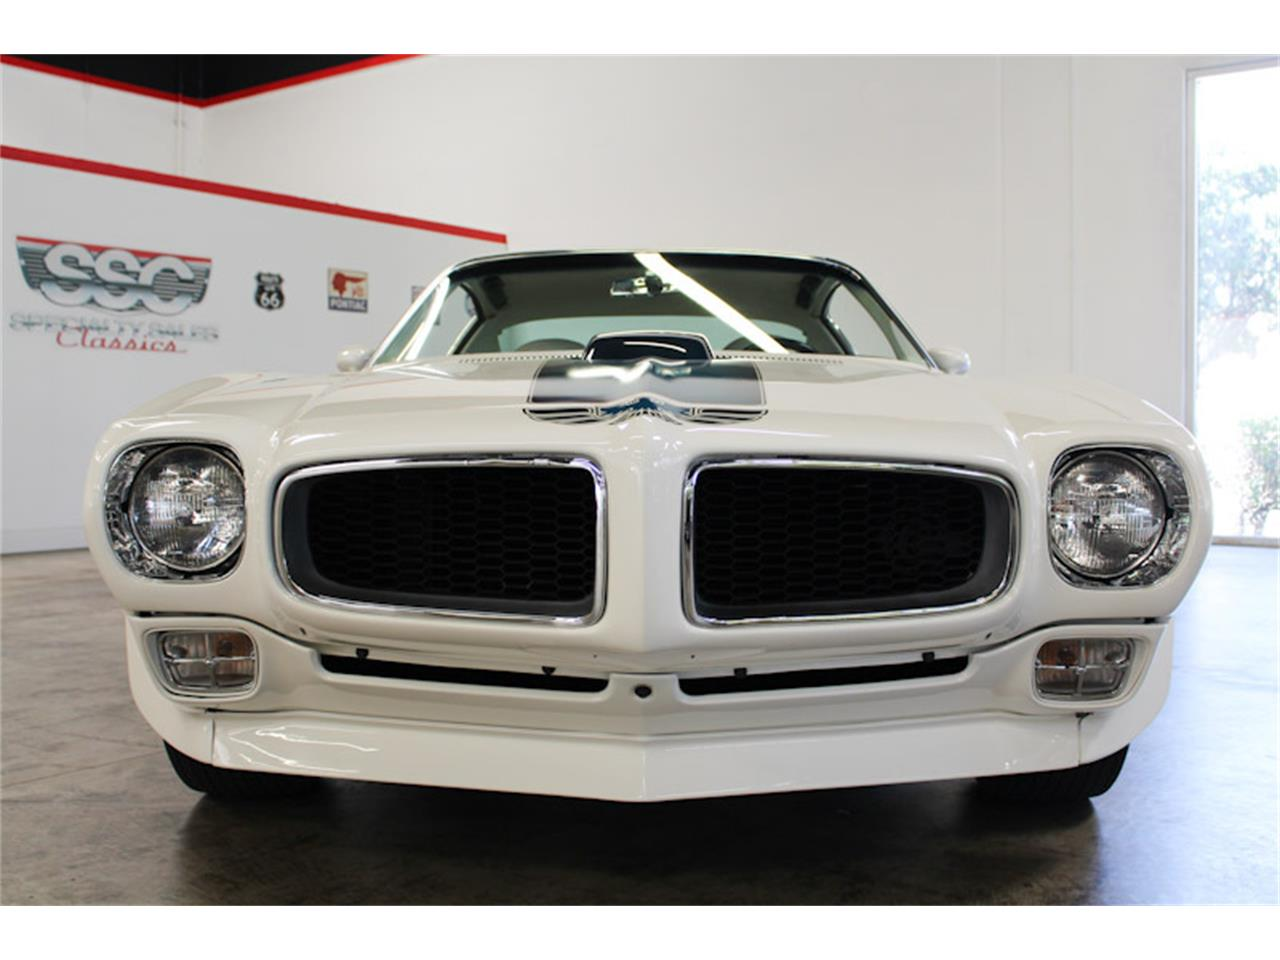 Large Picture of 1972 Pontiac Firebird located in California - $129,990.00 - QQZ8